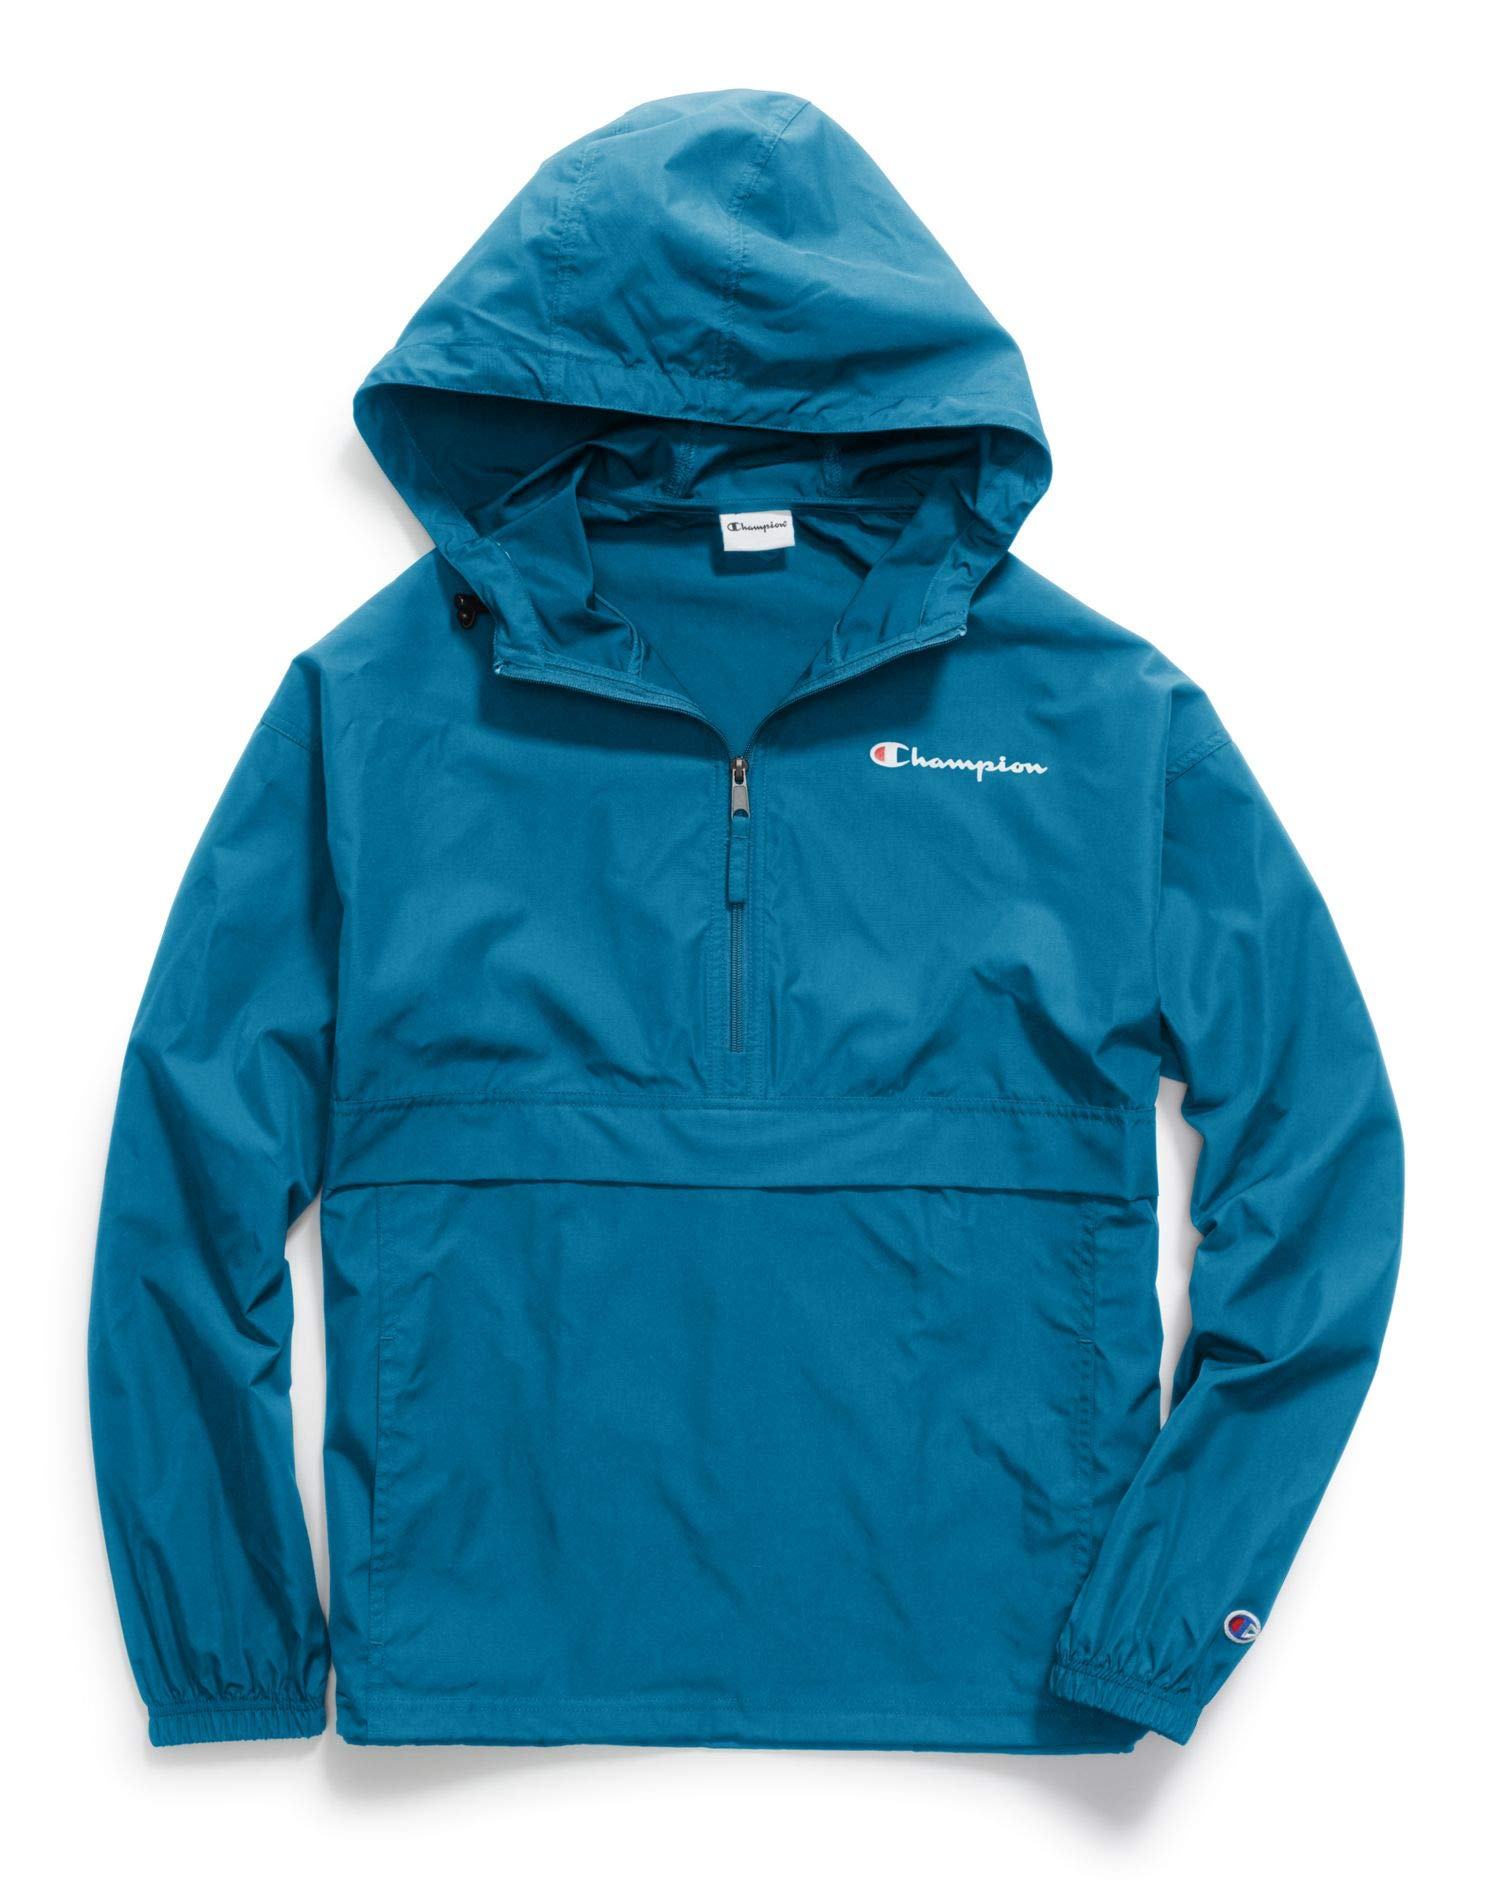 Champion Men's Packable Jacket❗️Ships directly from Hanes❗️❗️Ships directly from Hanes❗️ by Champion